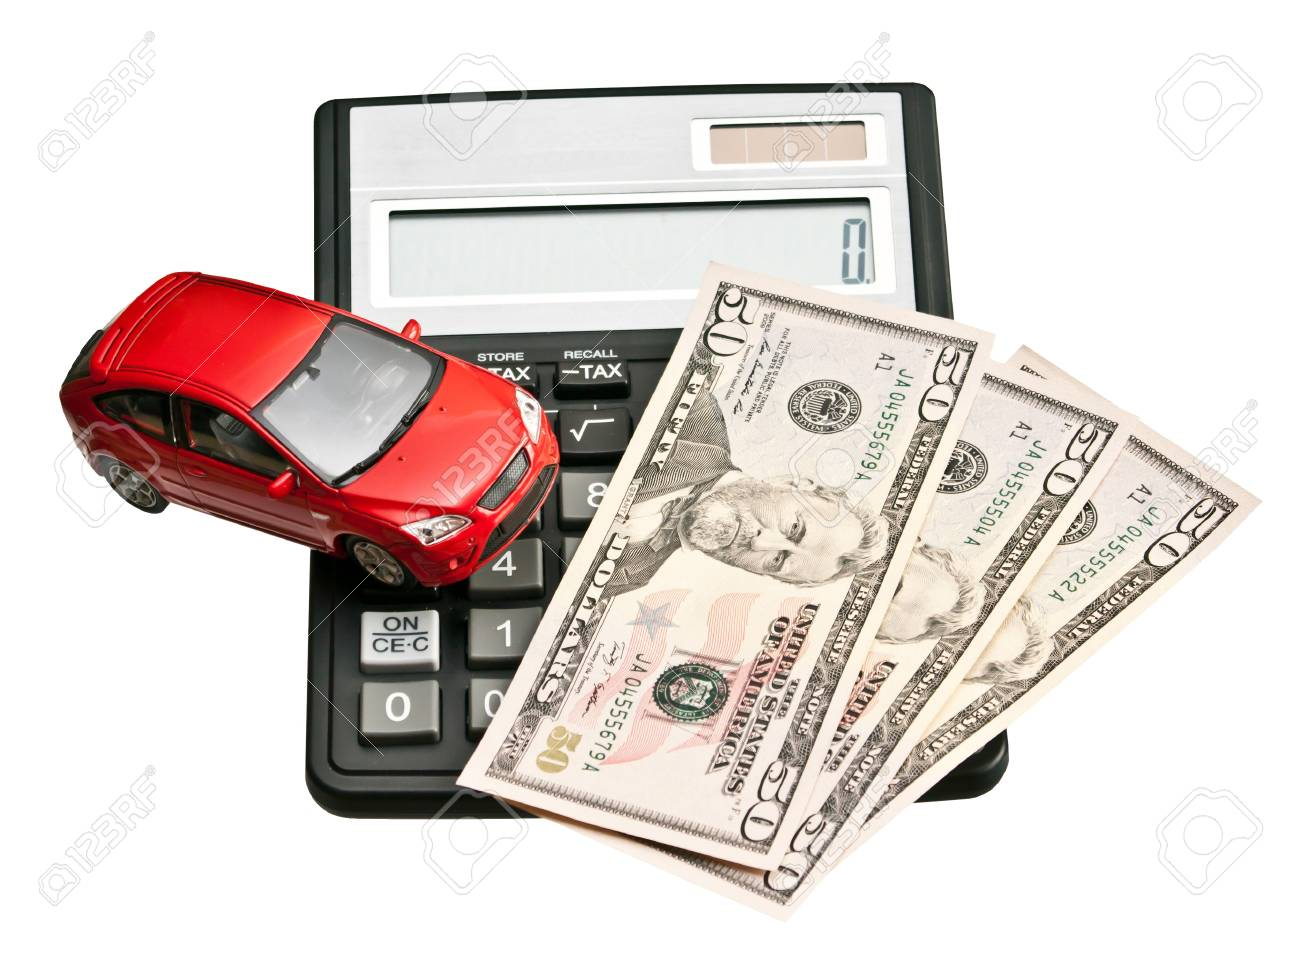 Toy car and calculator  Concept for buying, renting, insurance, fuel, service and repair costs Stock Photo - 20405582